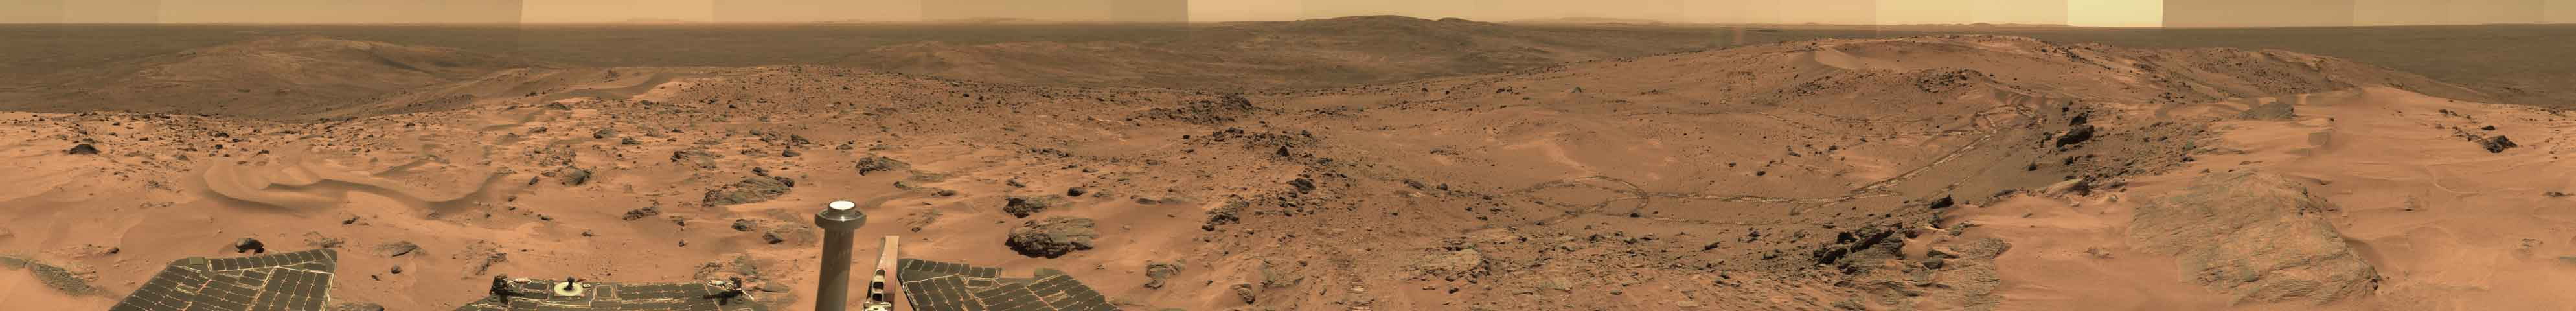 Panorama Everest sur Mars